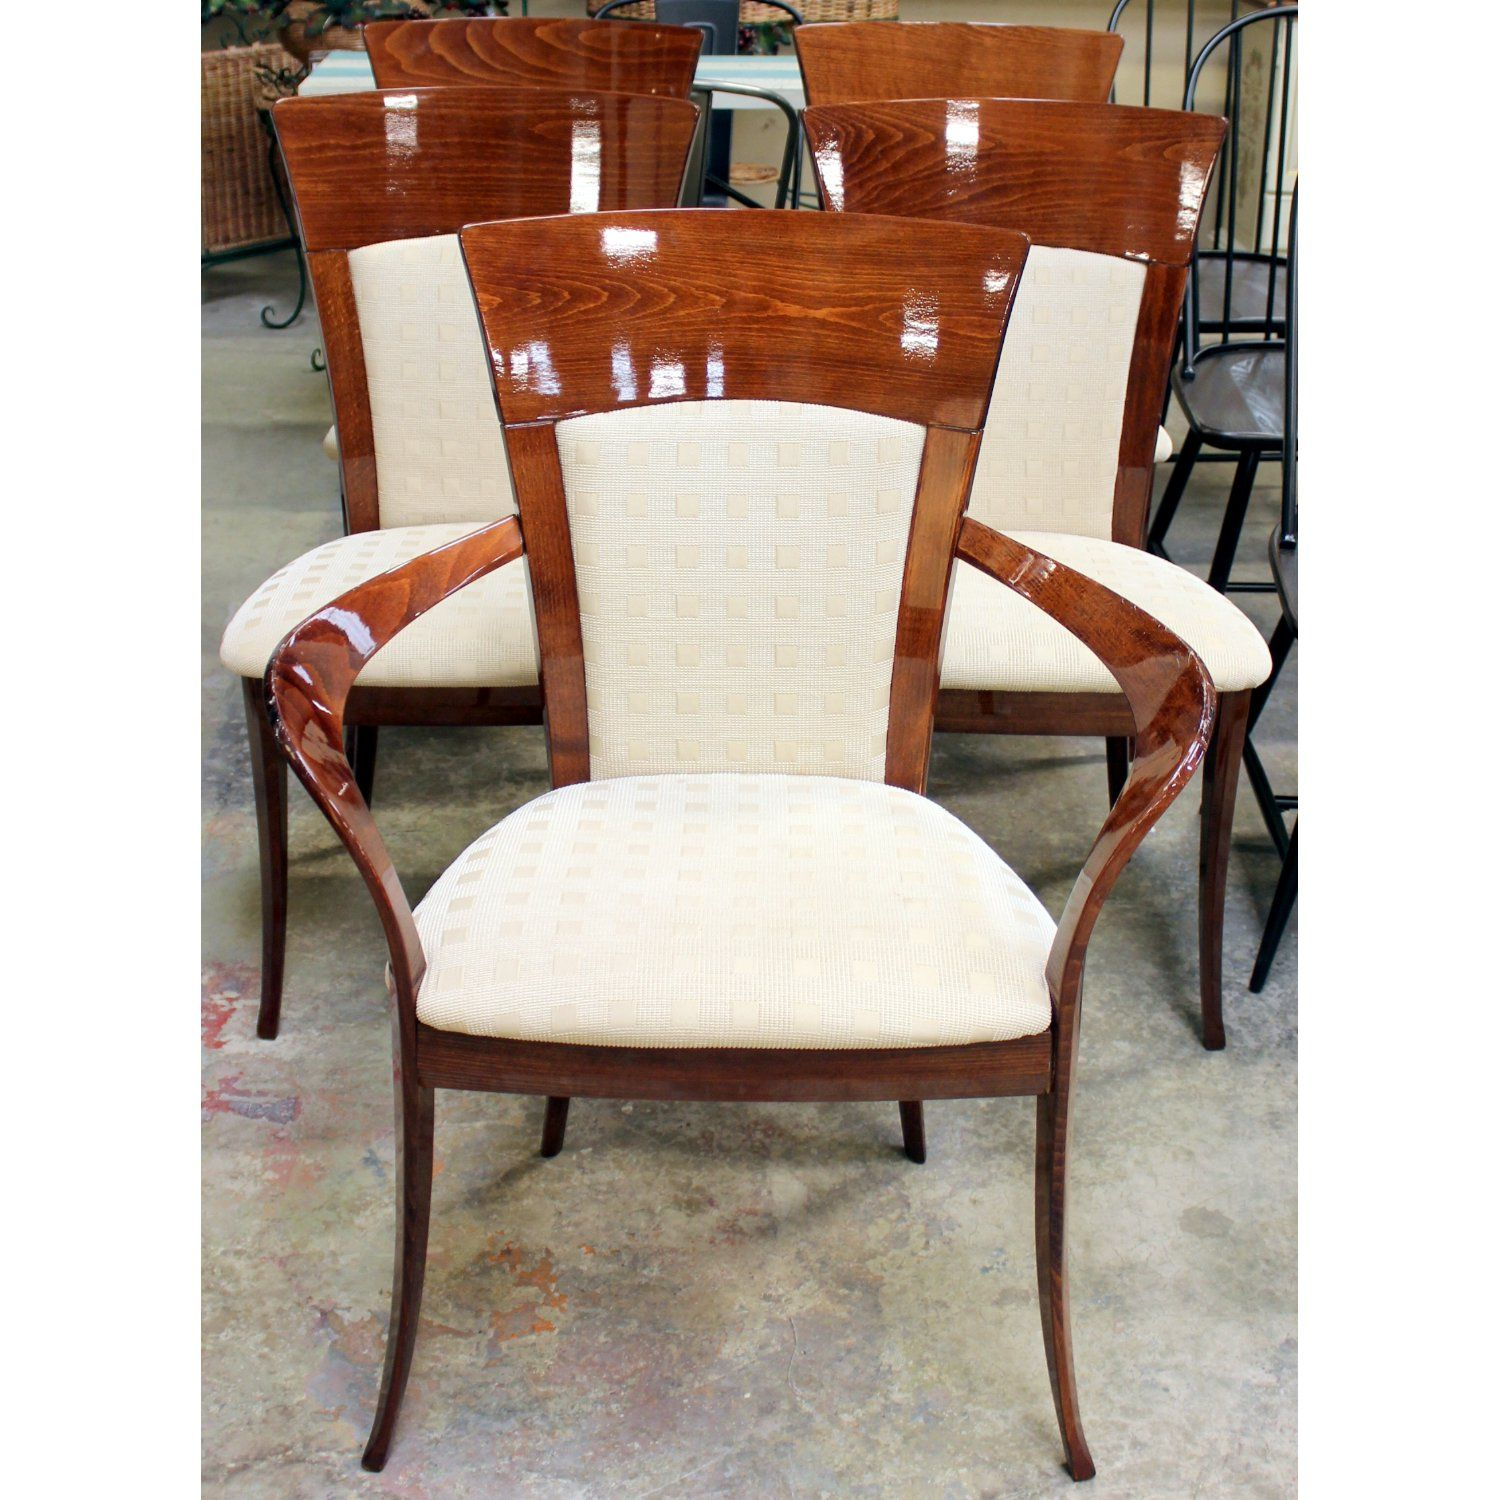 Ello Furniture Set Of 5 Dining Chairs | Upscale Consignment